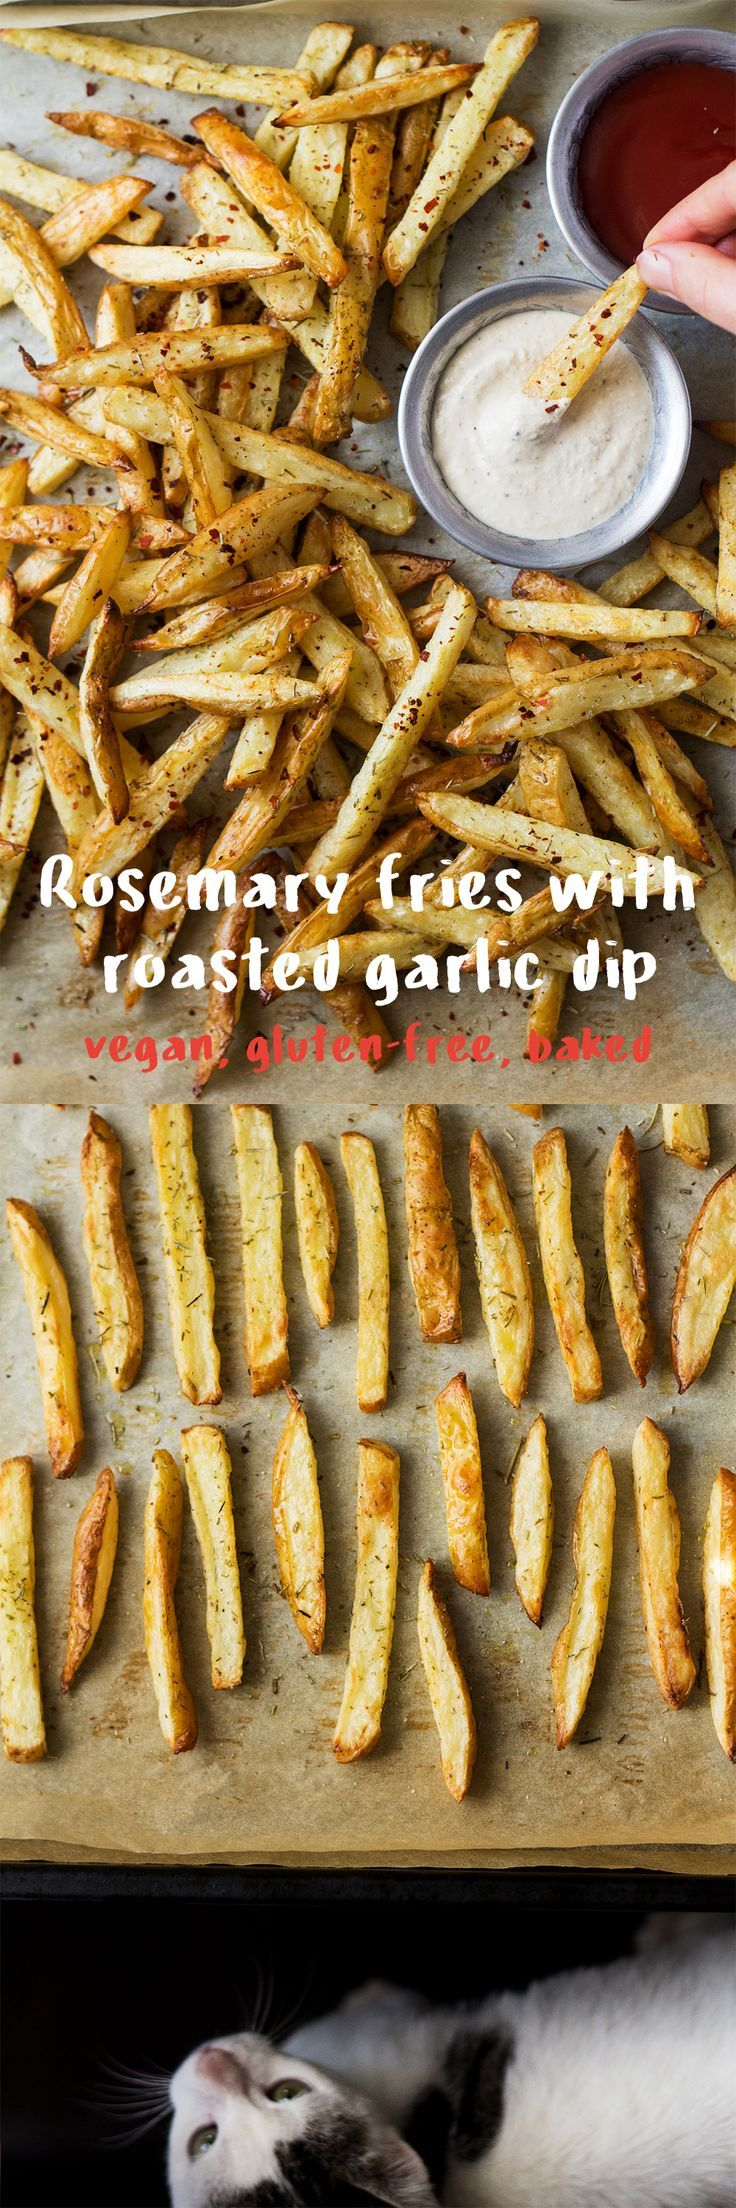 These #baked #rosemary #fries with a #dairyfree #garlic #dip make a delicious #snack or a #sidedish. #Easy to make, naturally #vegan and #glutenfree. #recipe #recipes #chips #frenchfries #ovenfries #vegetarian #healthy